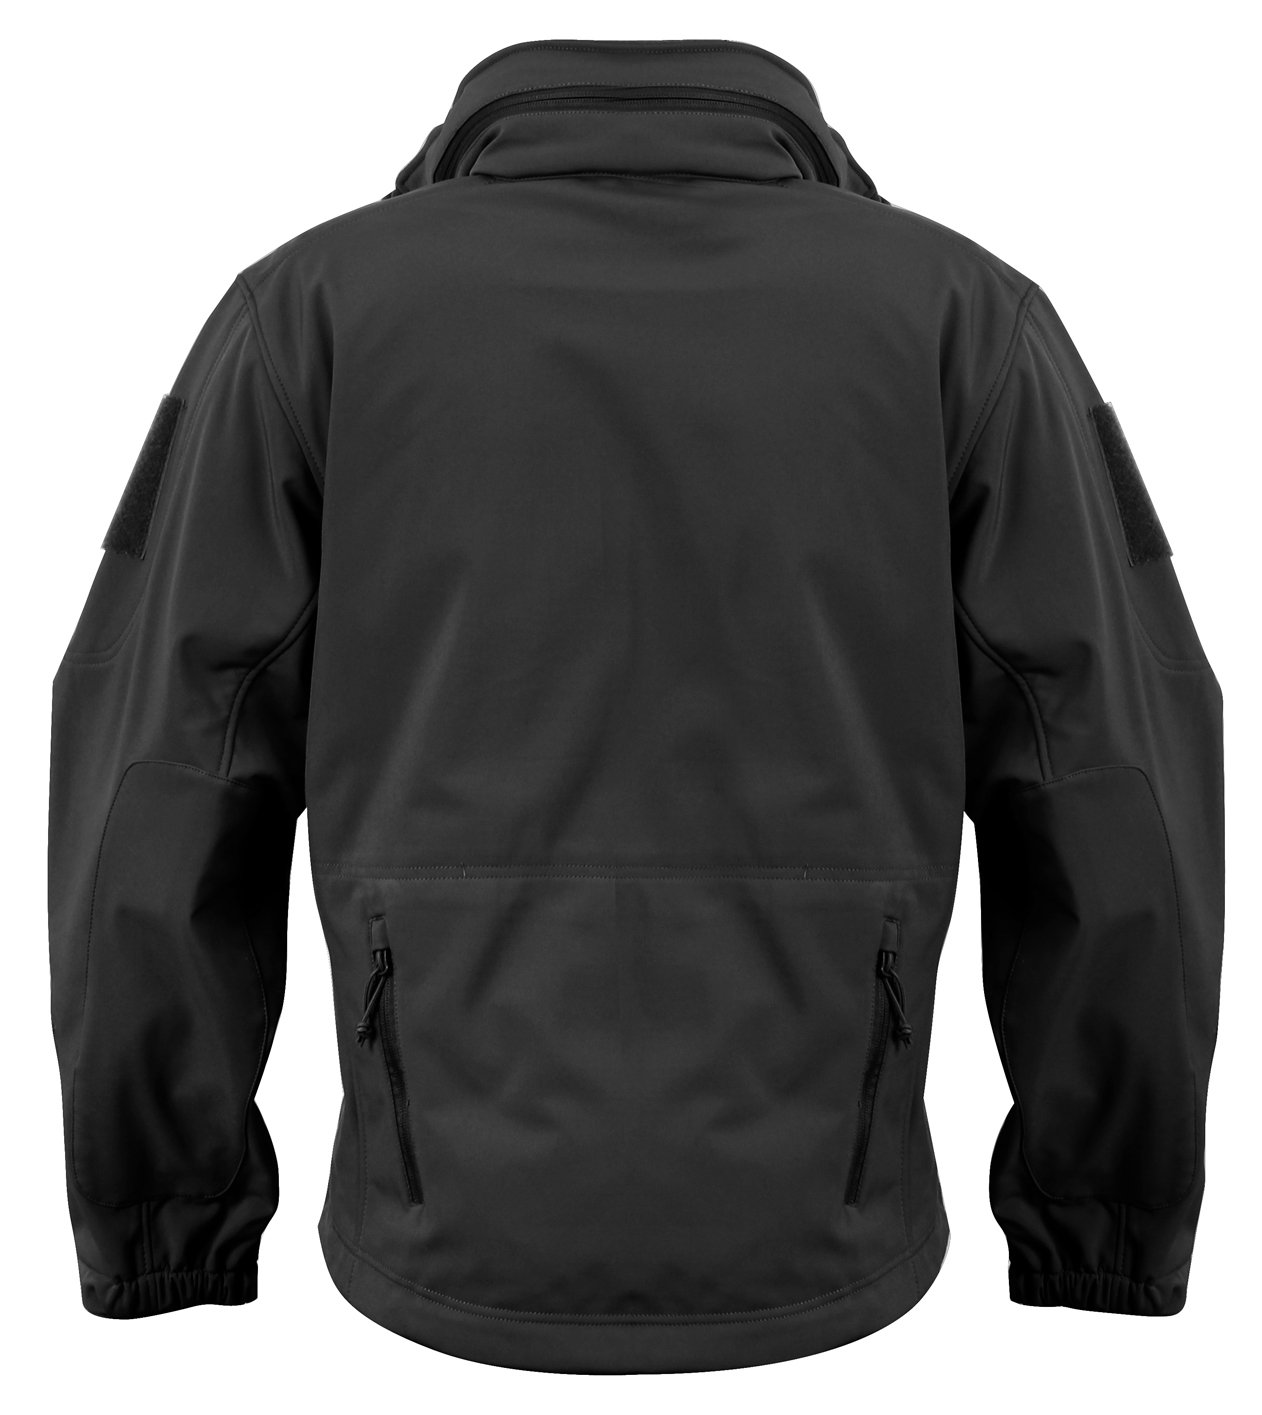 c0bc8bd9c Rothco Special Ops Tactical Soft Shell Jacket